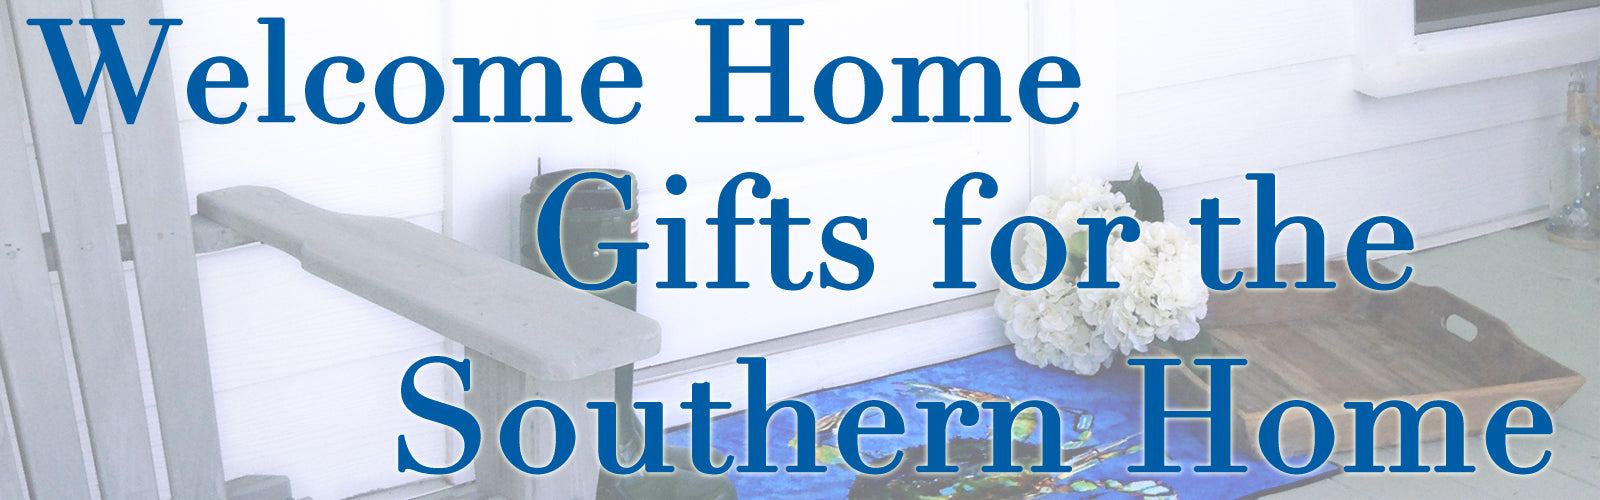 Gifts for the Southern Home